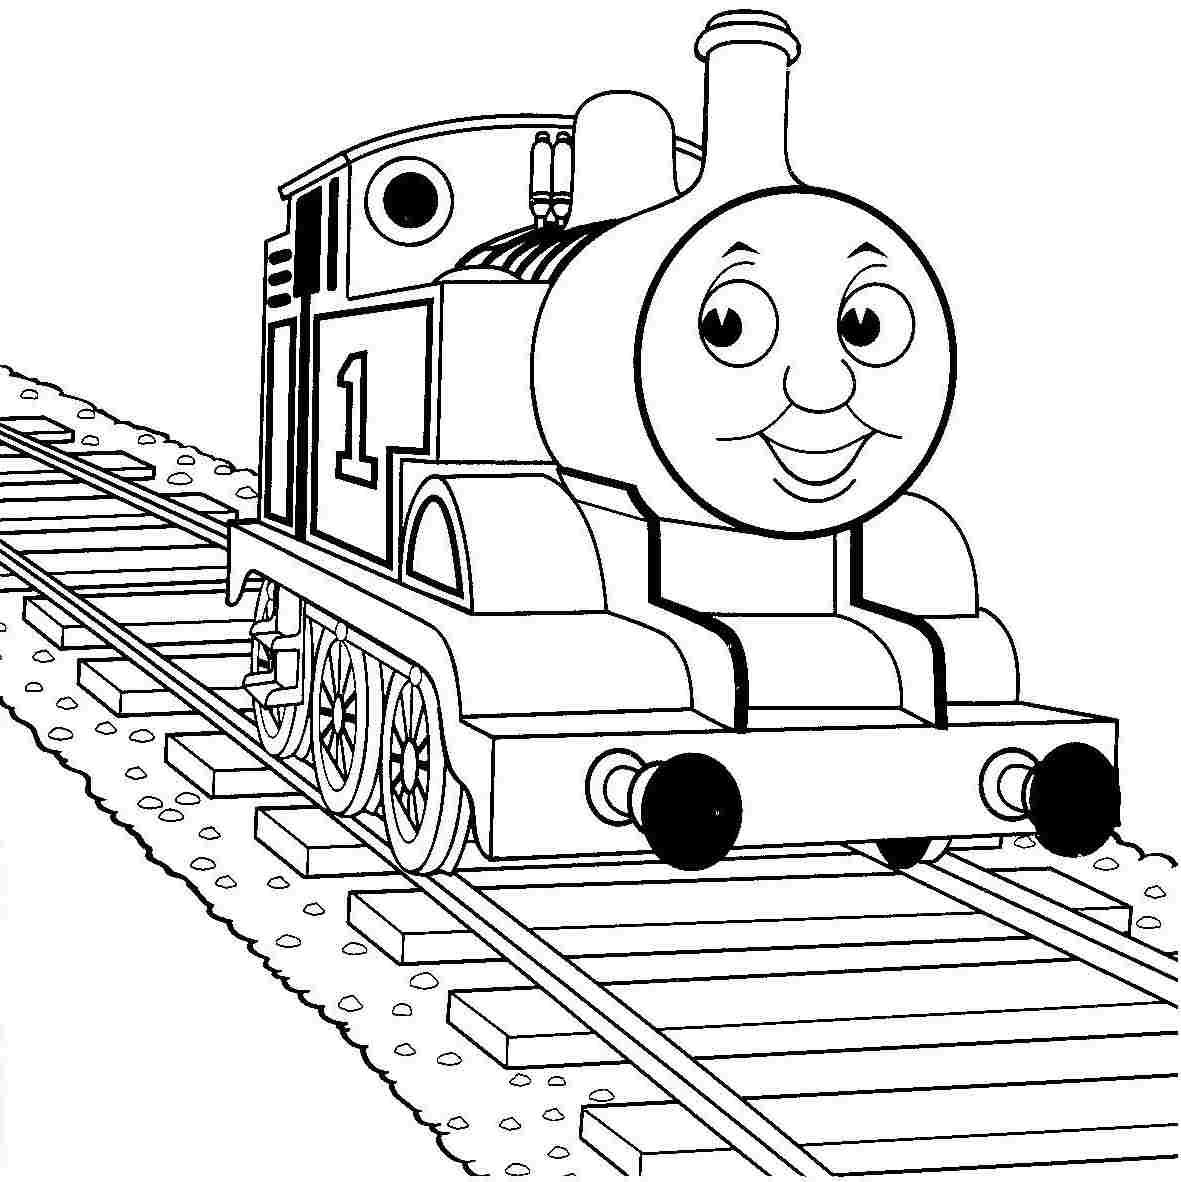 Thomas the train coloring page color periods free Free sketching online